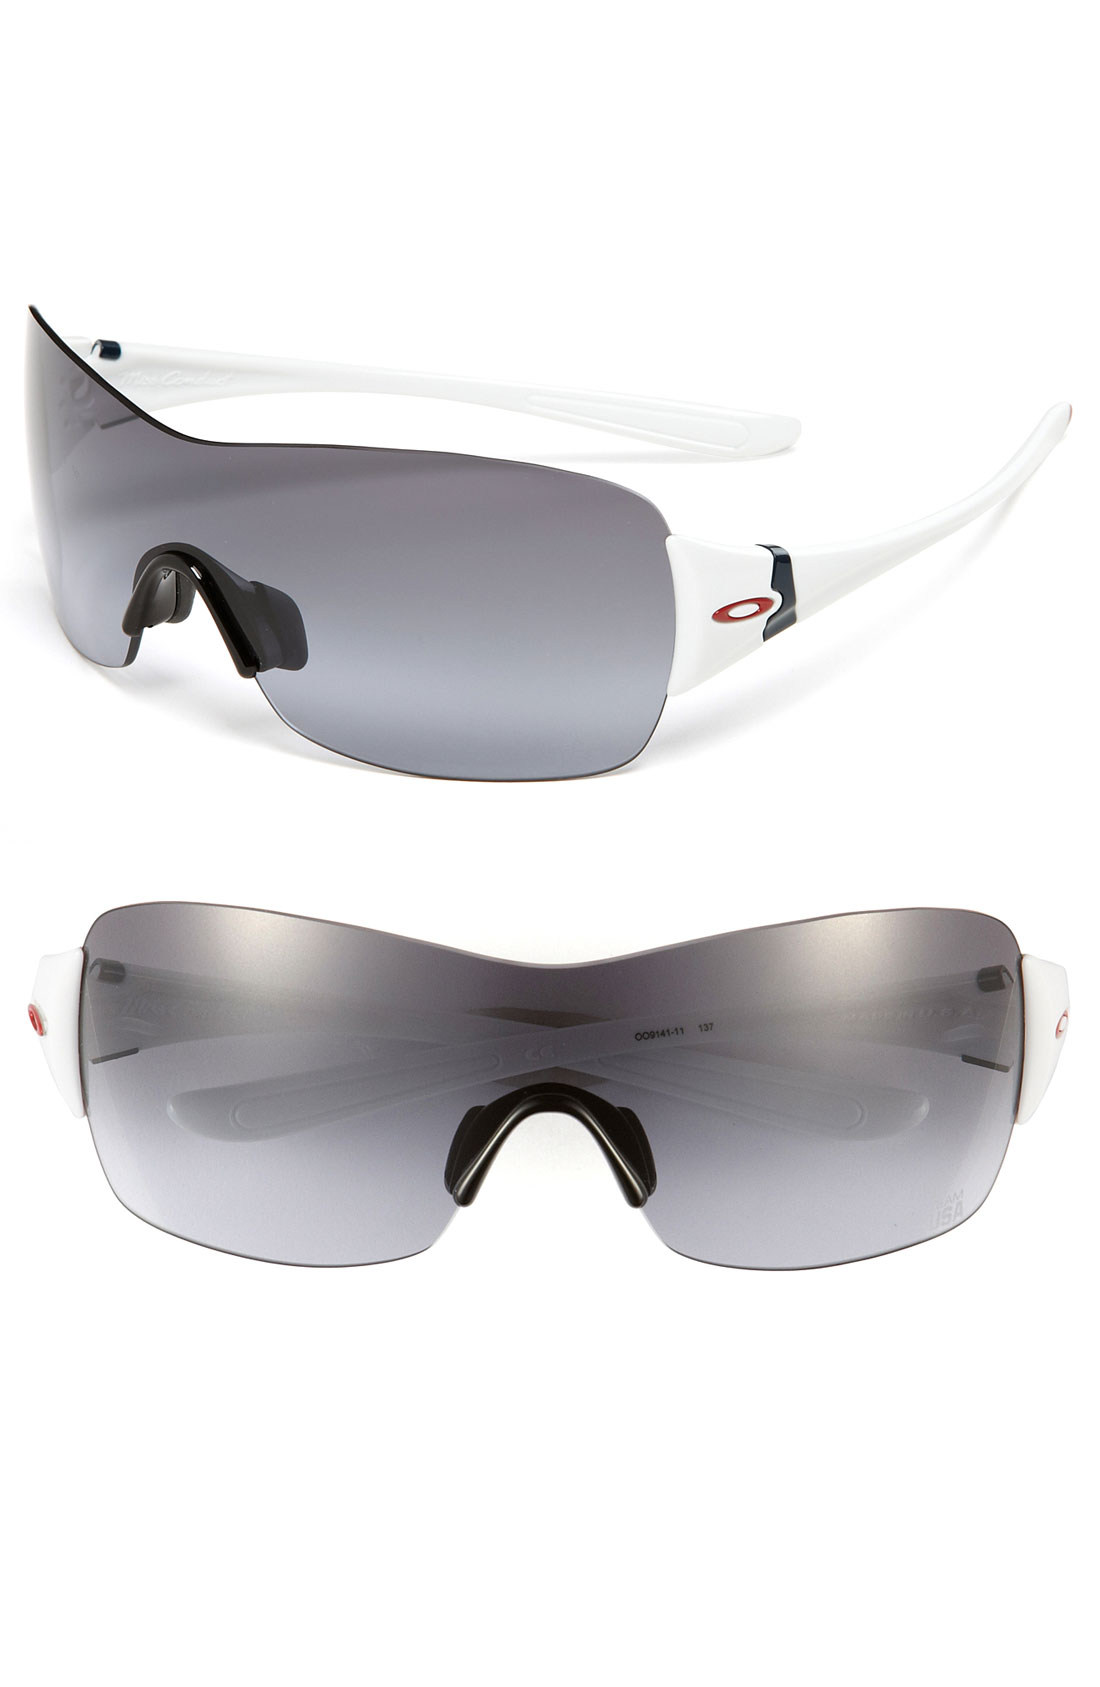 Oakley Miss Conduct Team Usa 137mm Rimless Shield